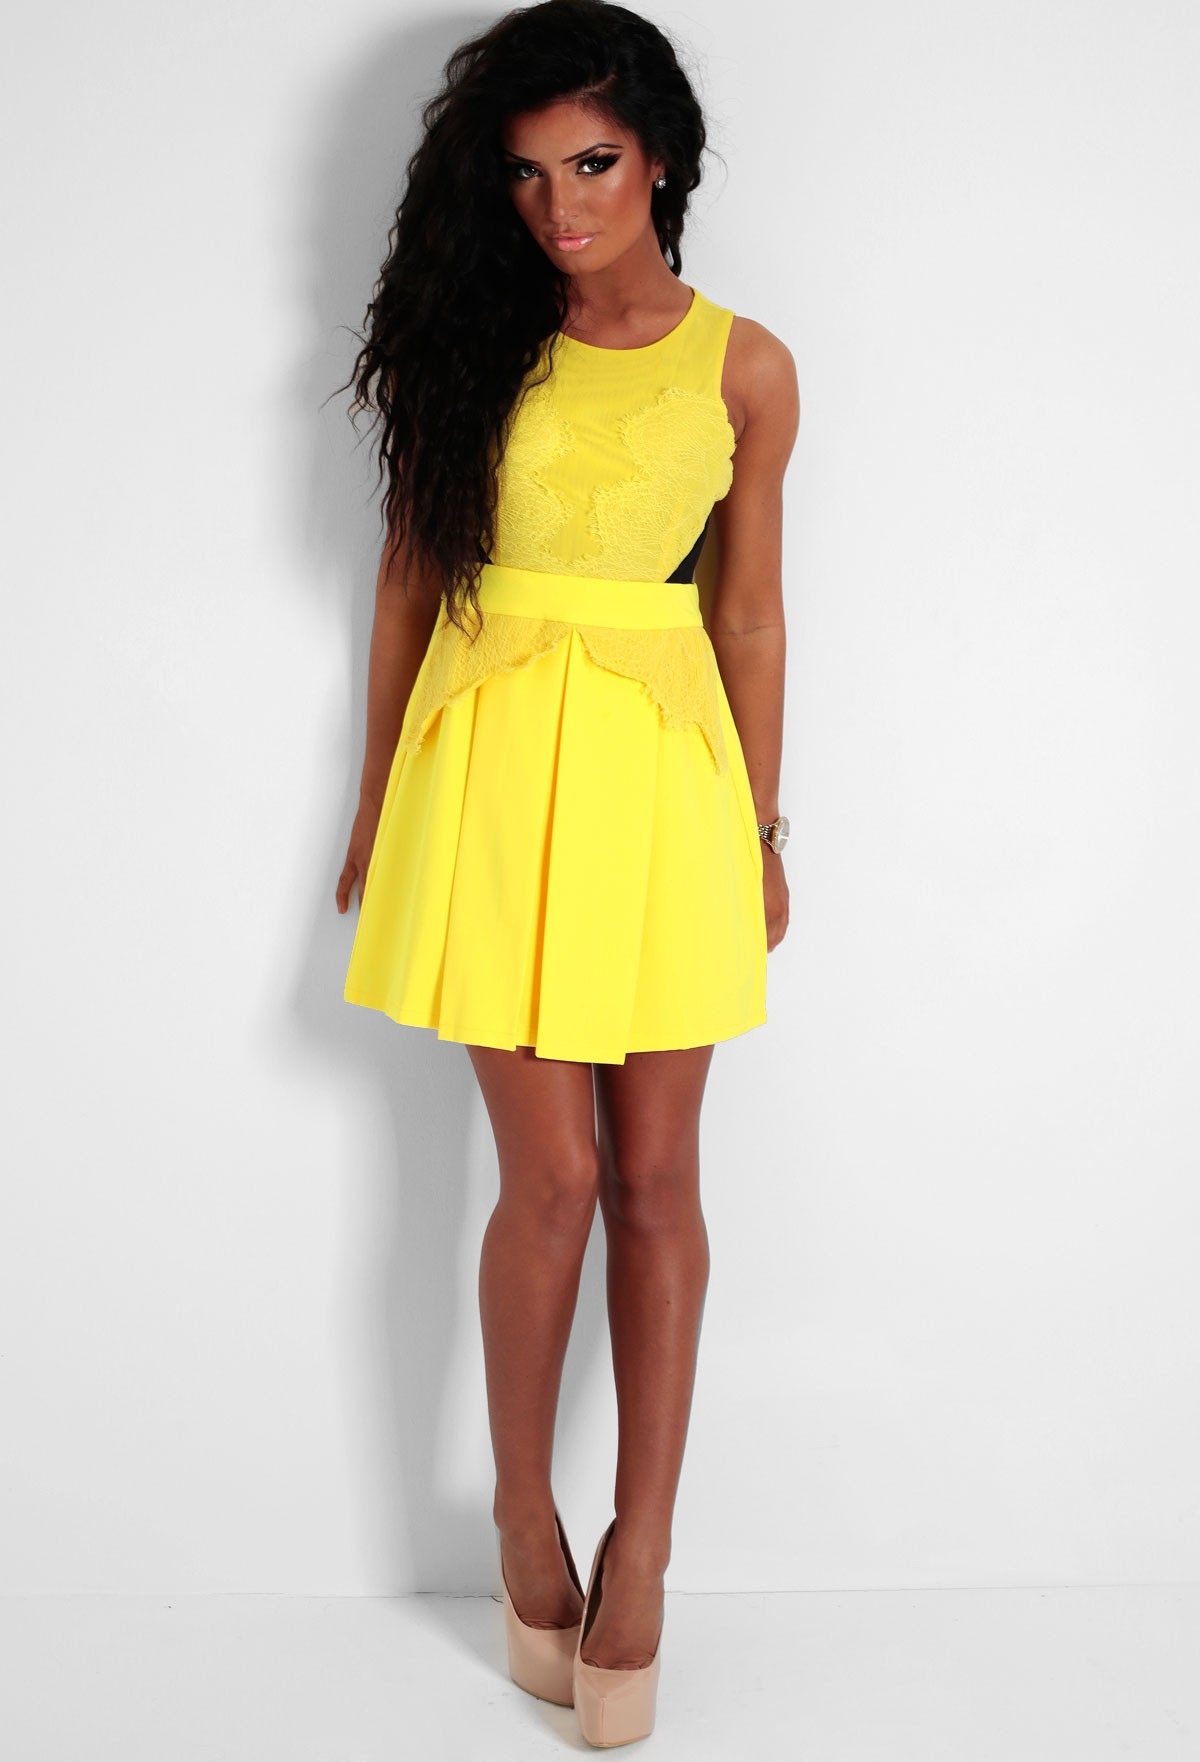 Women's Mustard Yellow Lace Trim Skater Dress $30 $ 15 + $ shipping From Missguided Price last checked 13 hours ago Product prices and availability are accurate as of the date/time indicated and are subject to truedfil3gz.gq: $